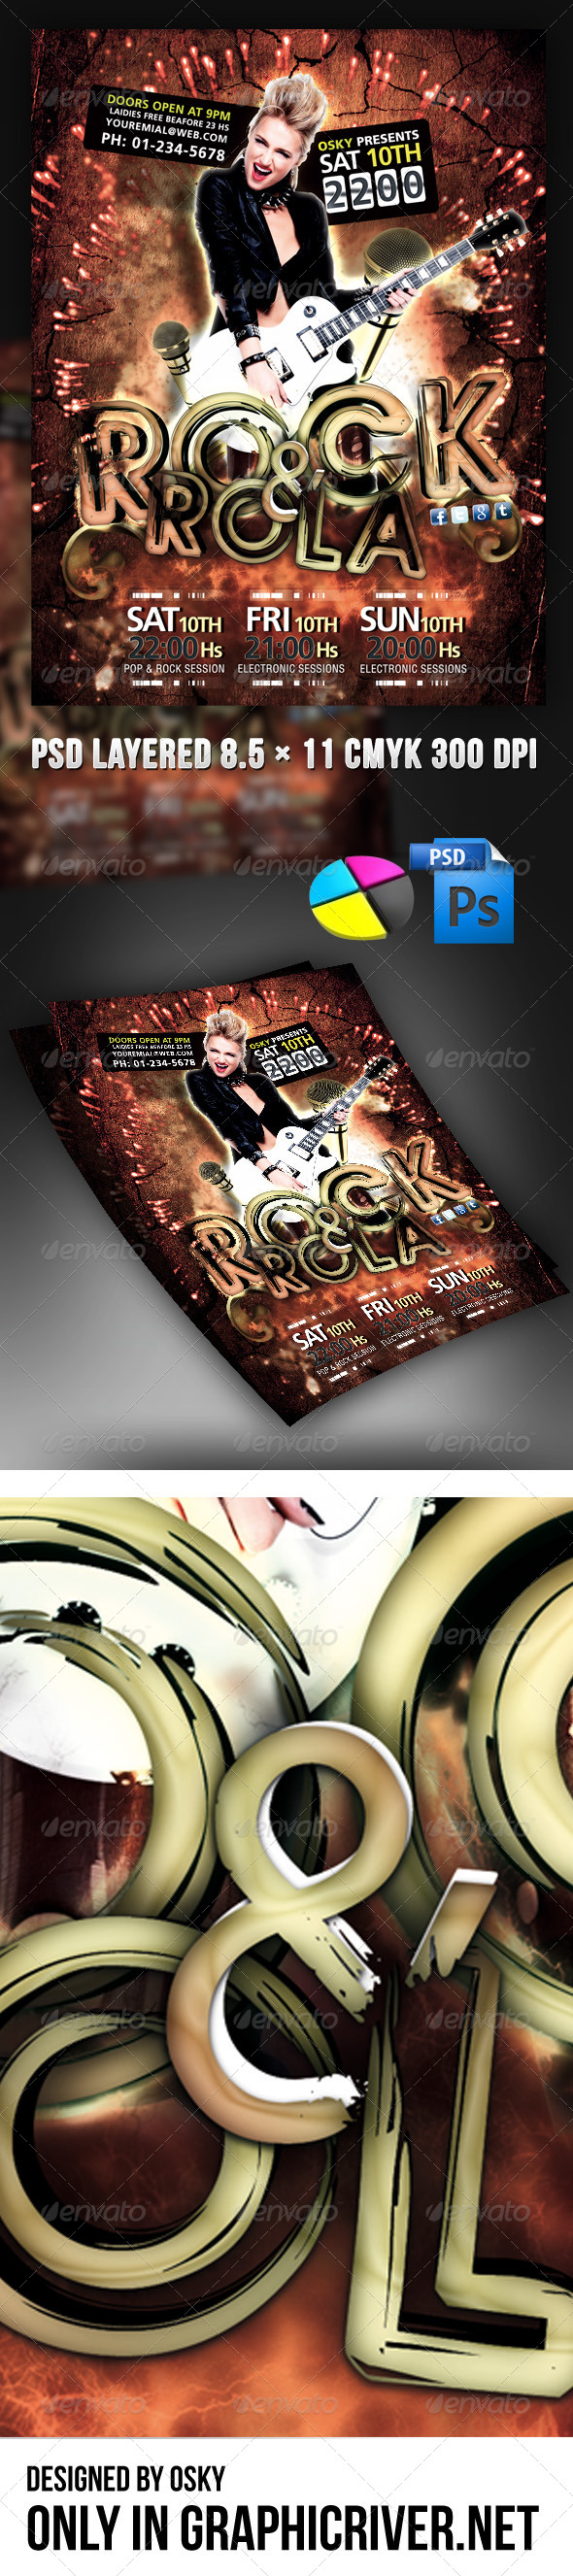 GraphicRiver Name Rock And Rola 4351317